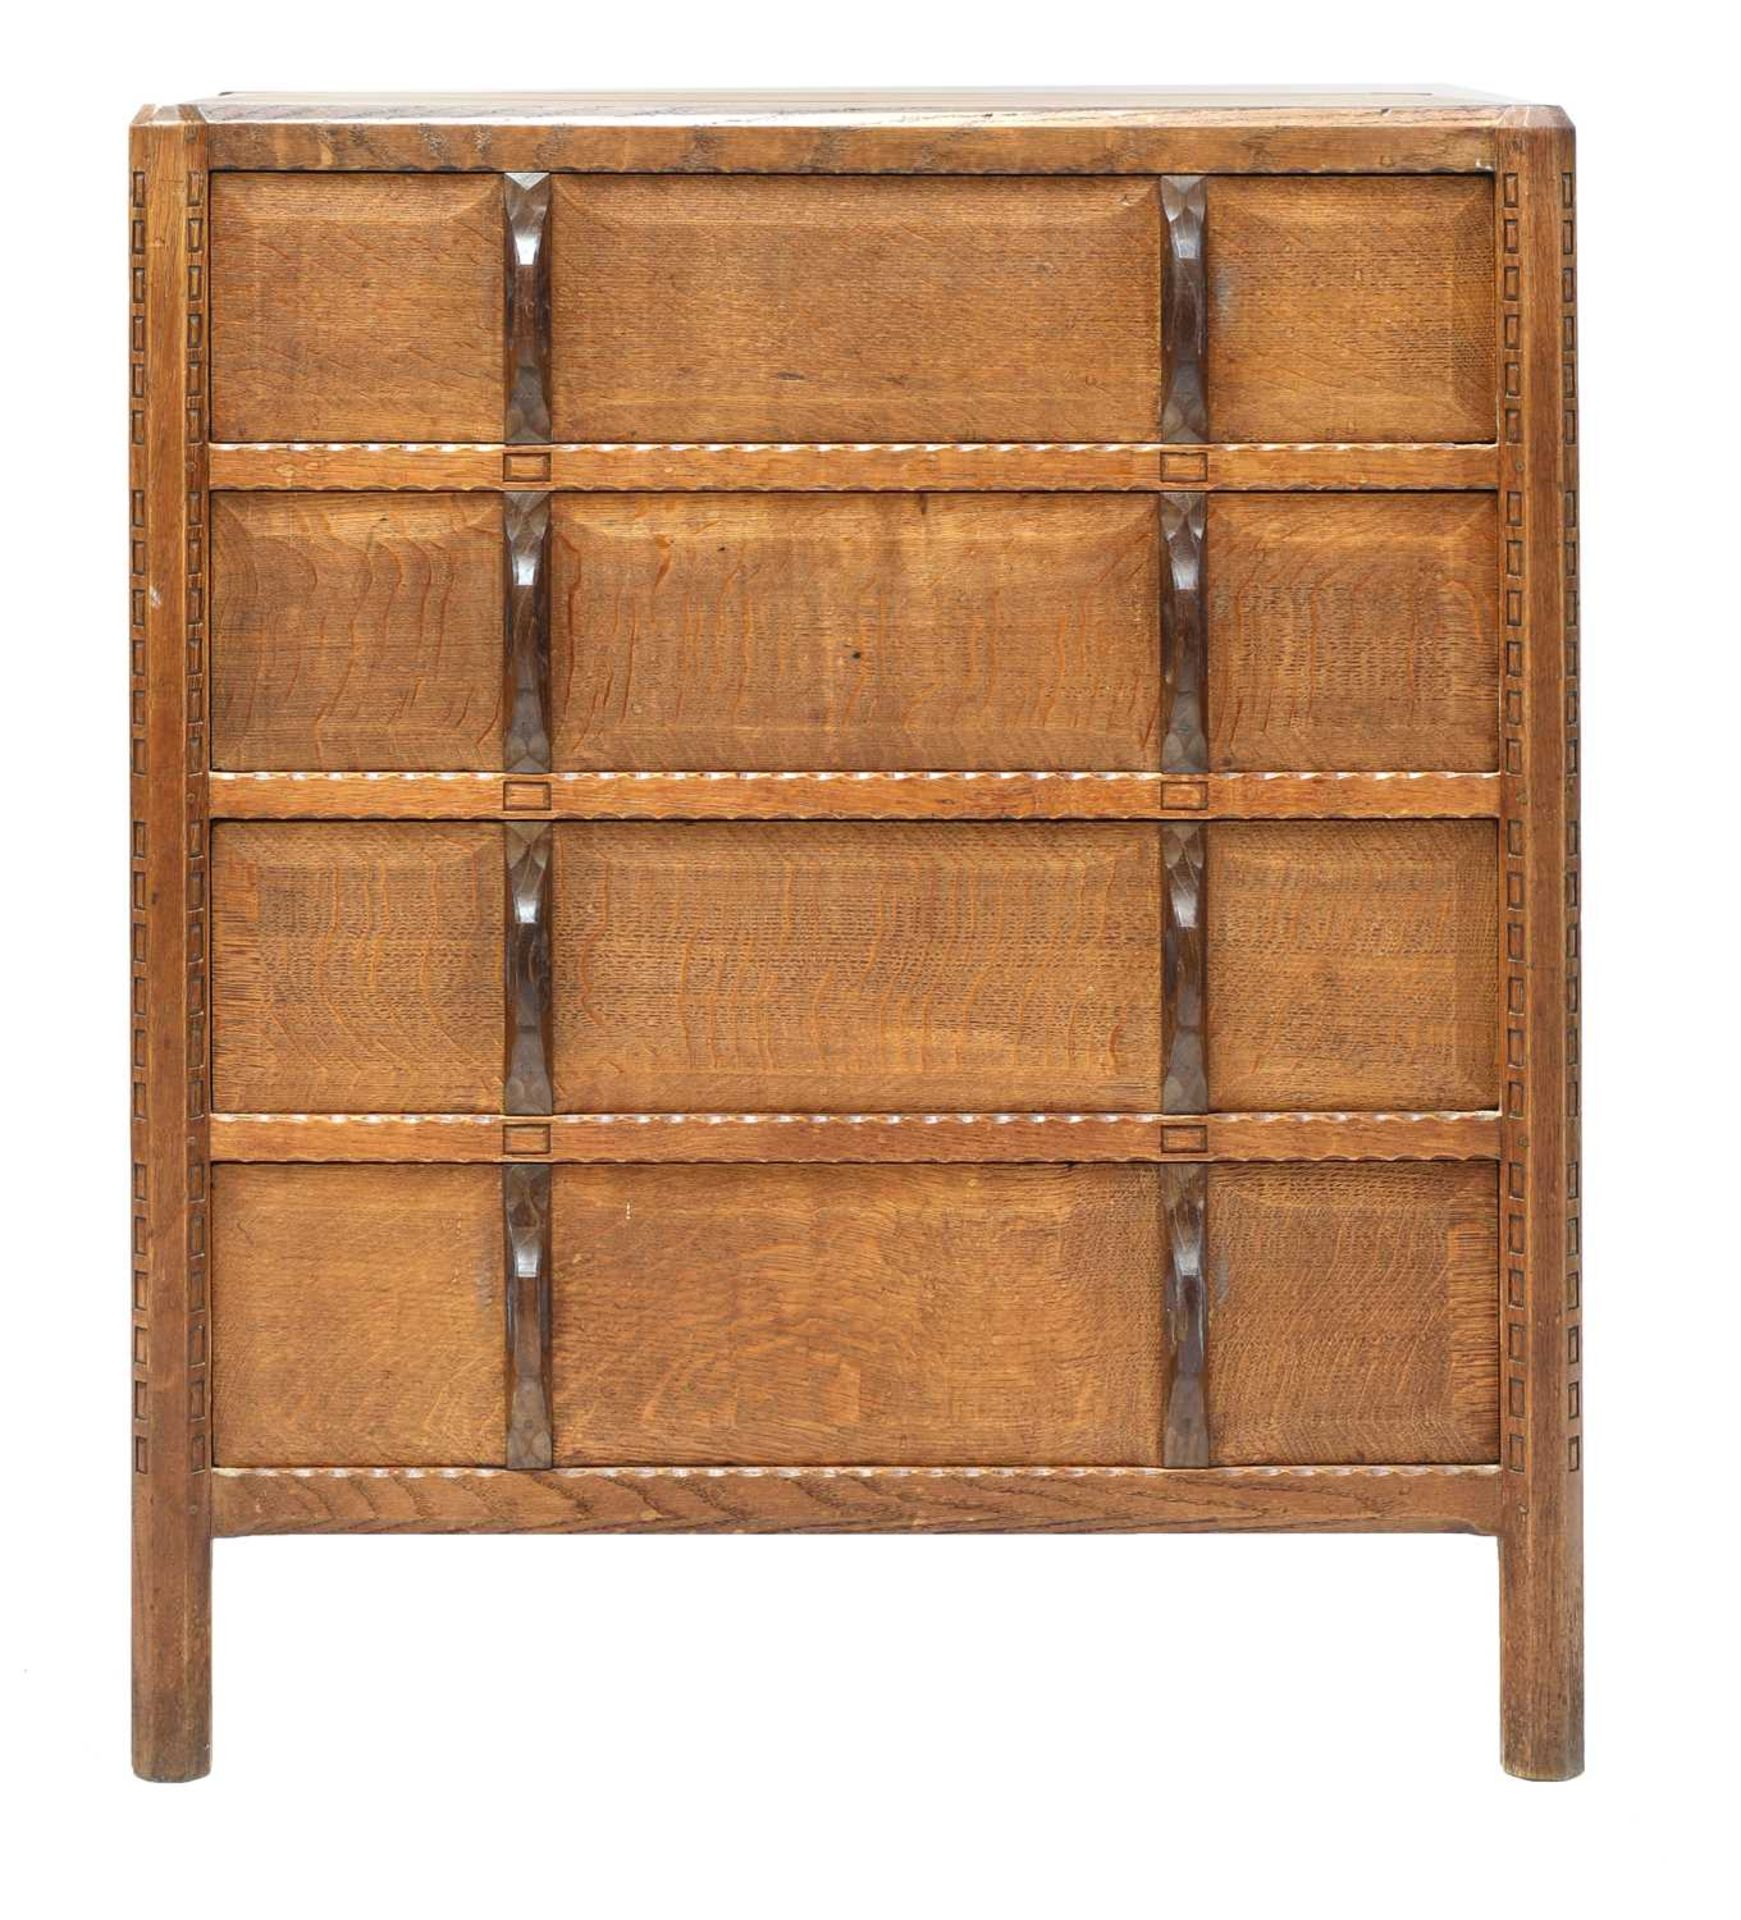 A Gordon Russell 'Stow' oak chest of four drawers,